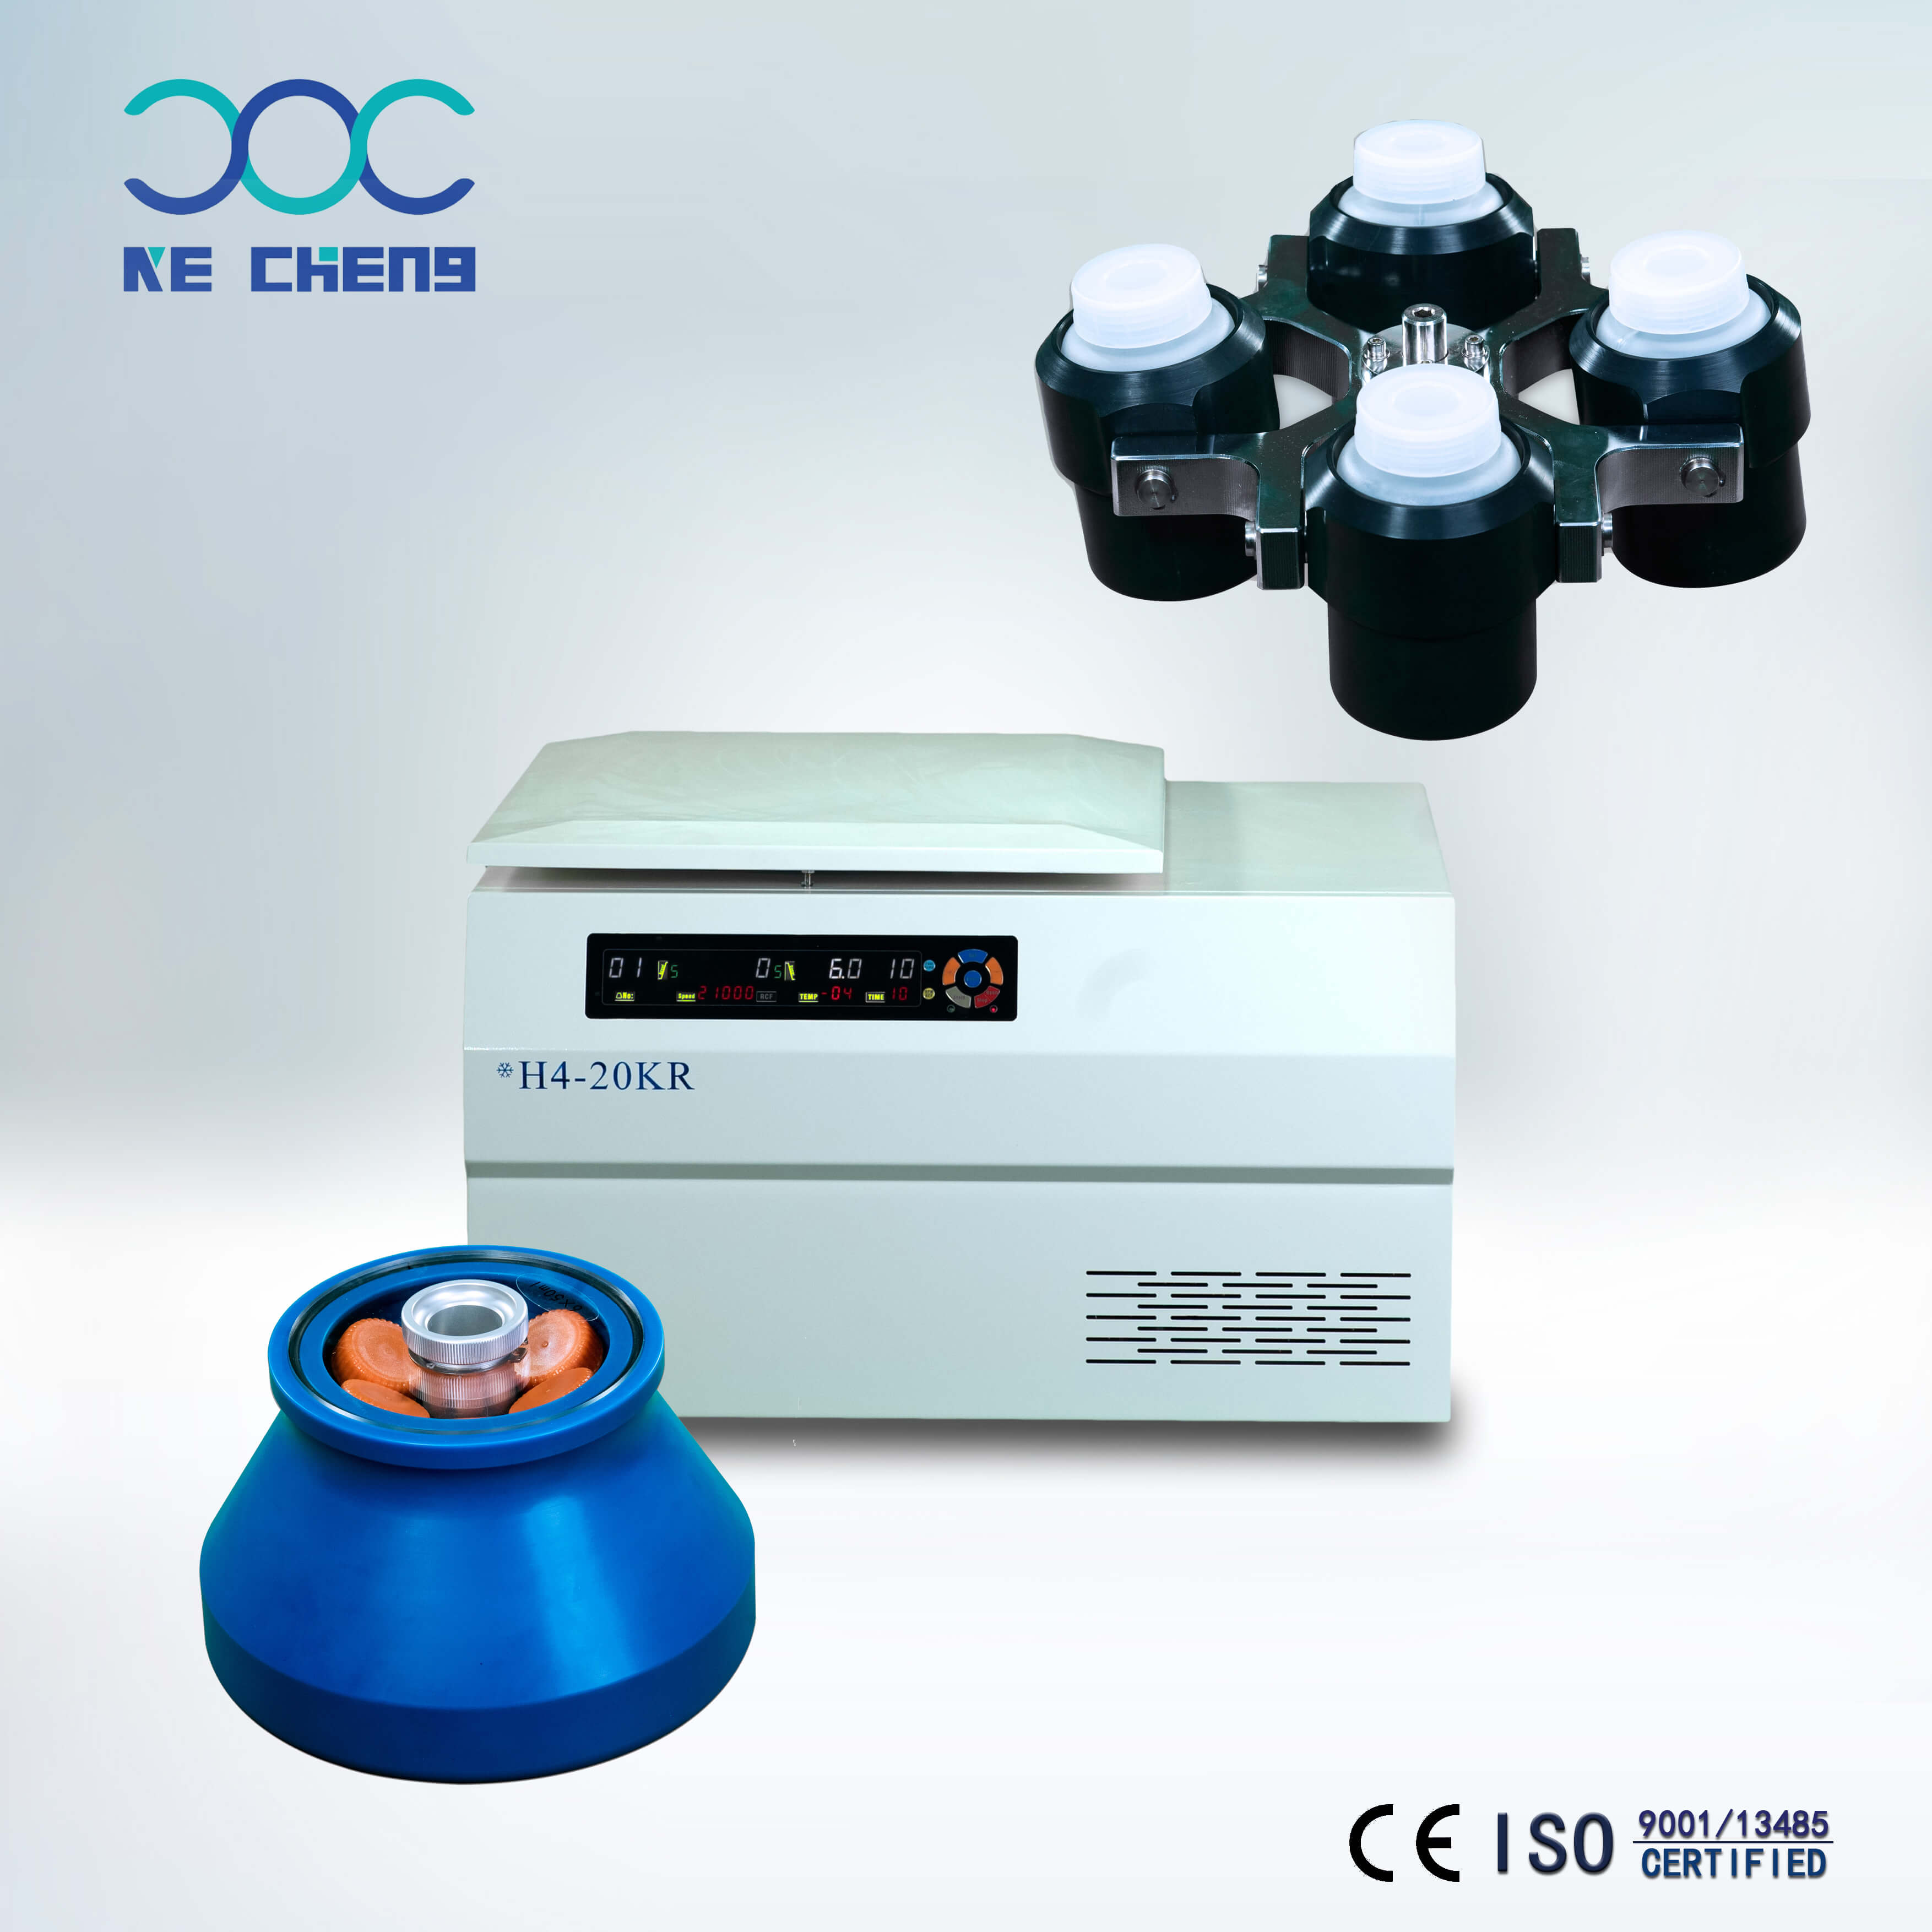 H4-20KR/H4-25KR/H4-30KR high speed refrigerated centrifuge